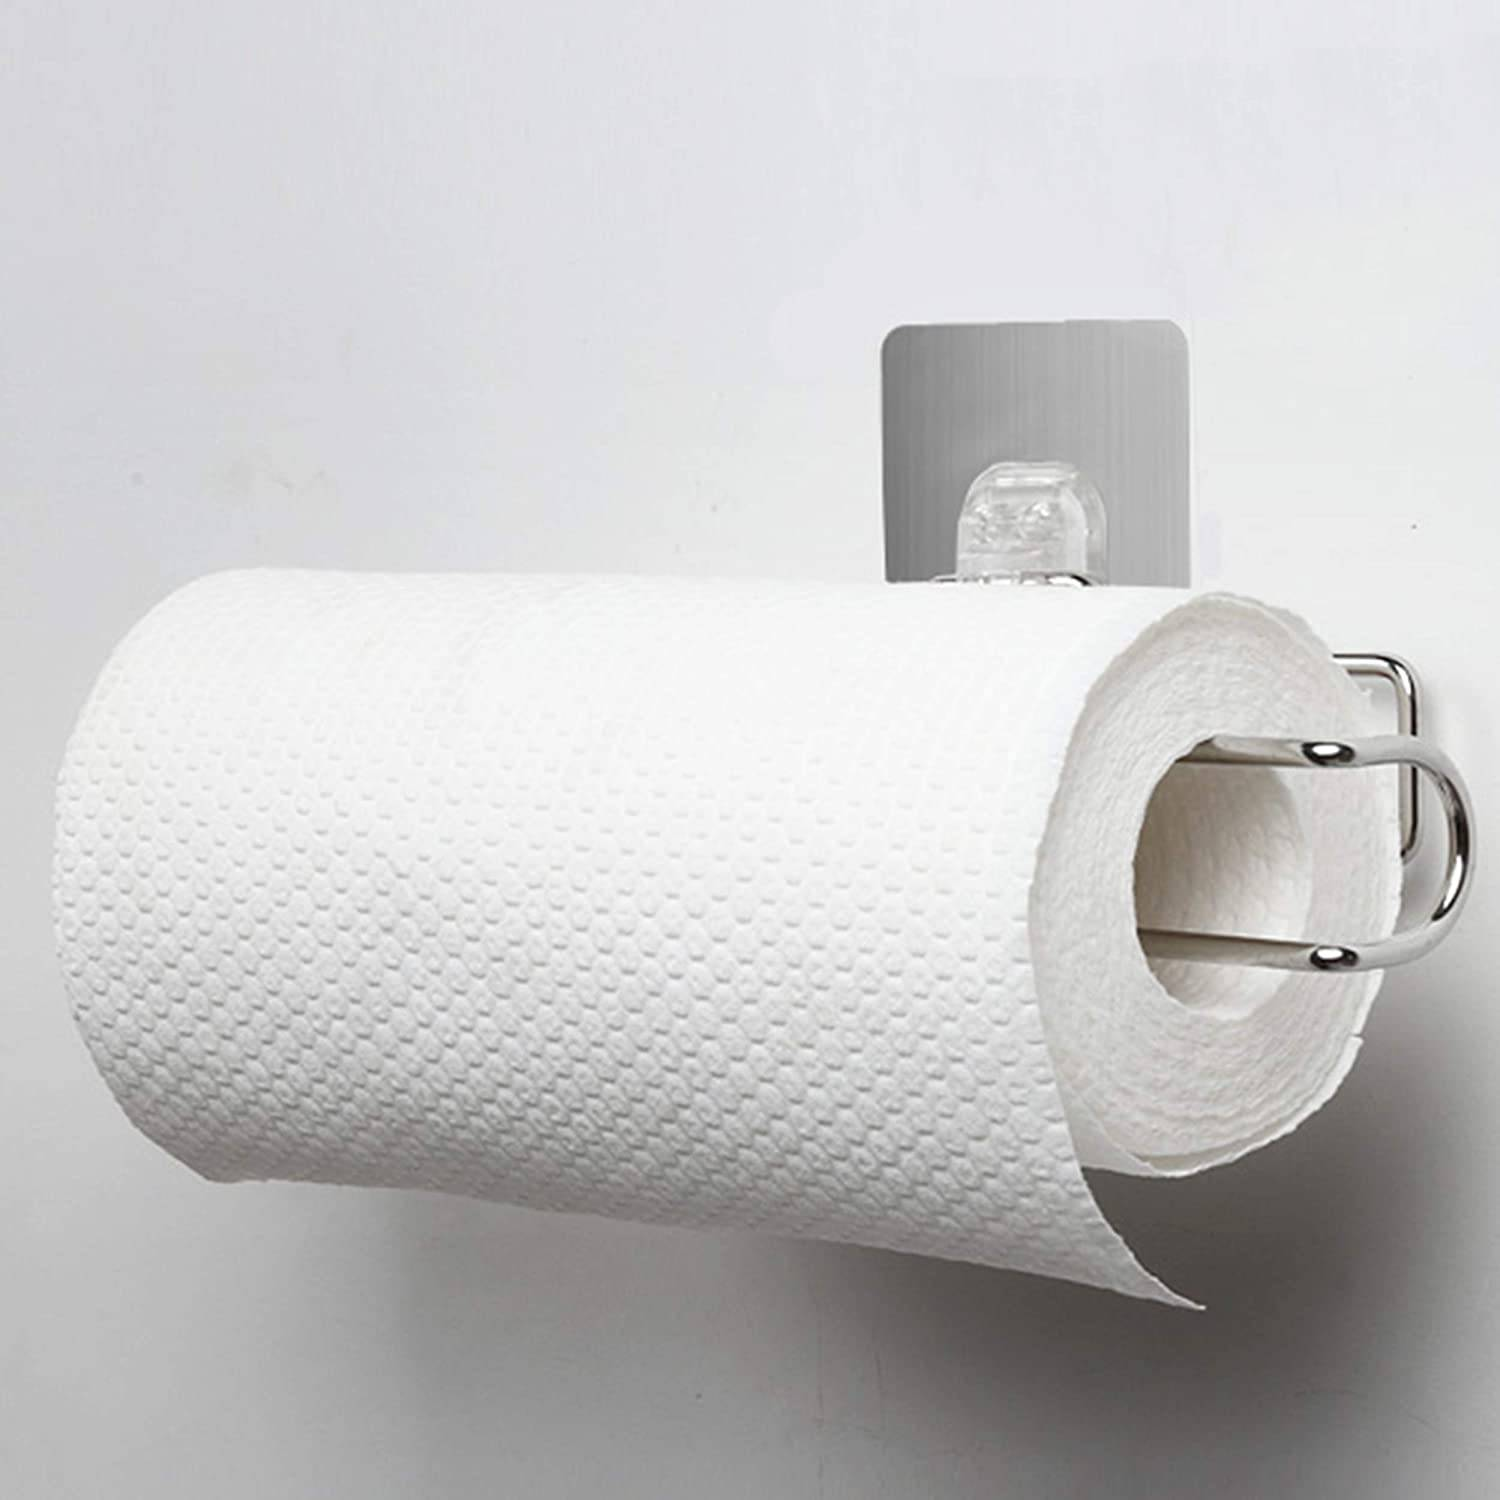 AND009311. Paper Roll Holder